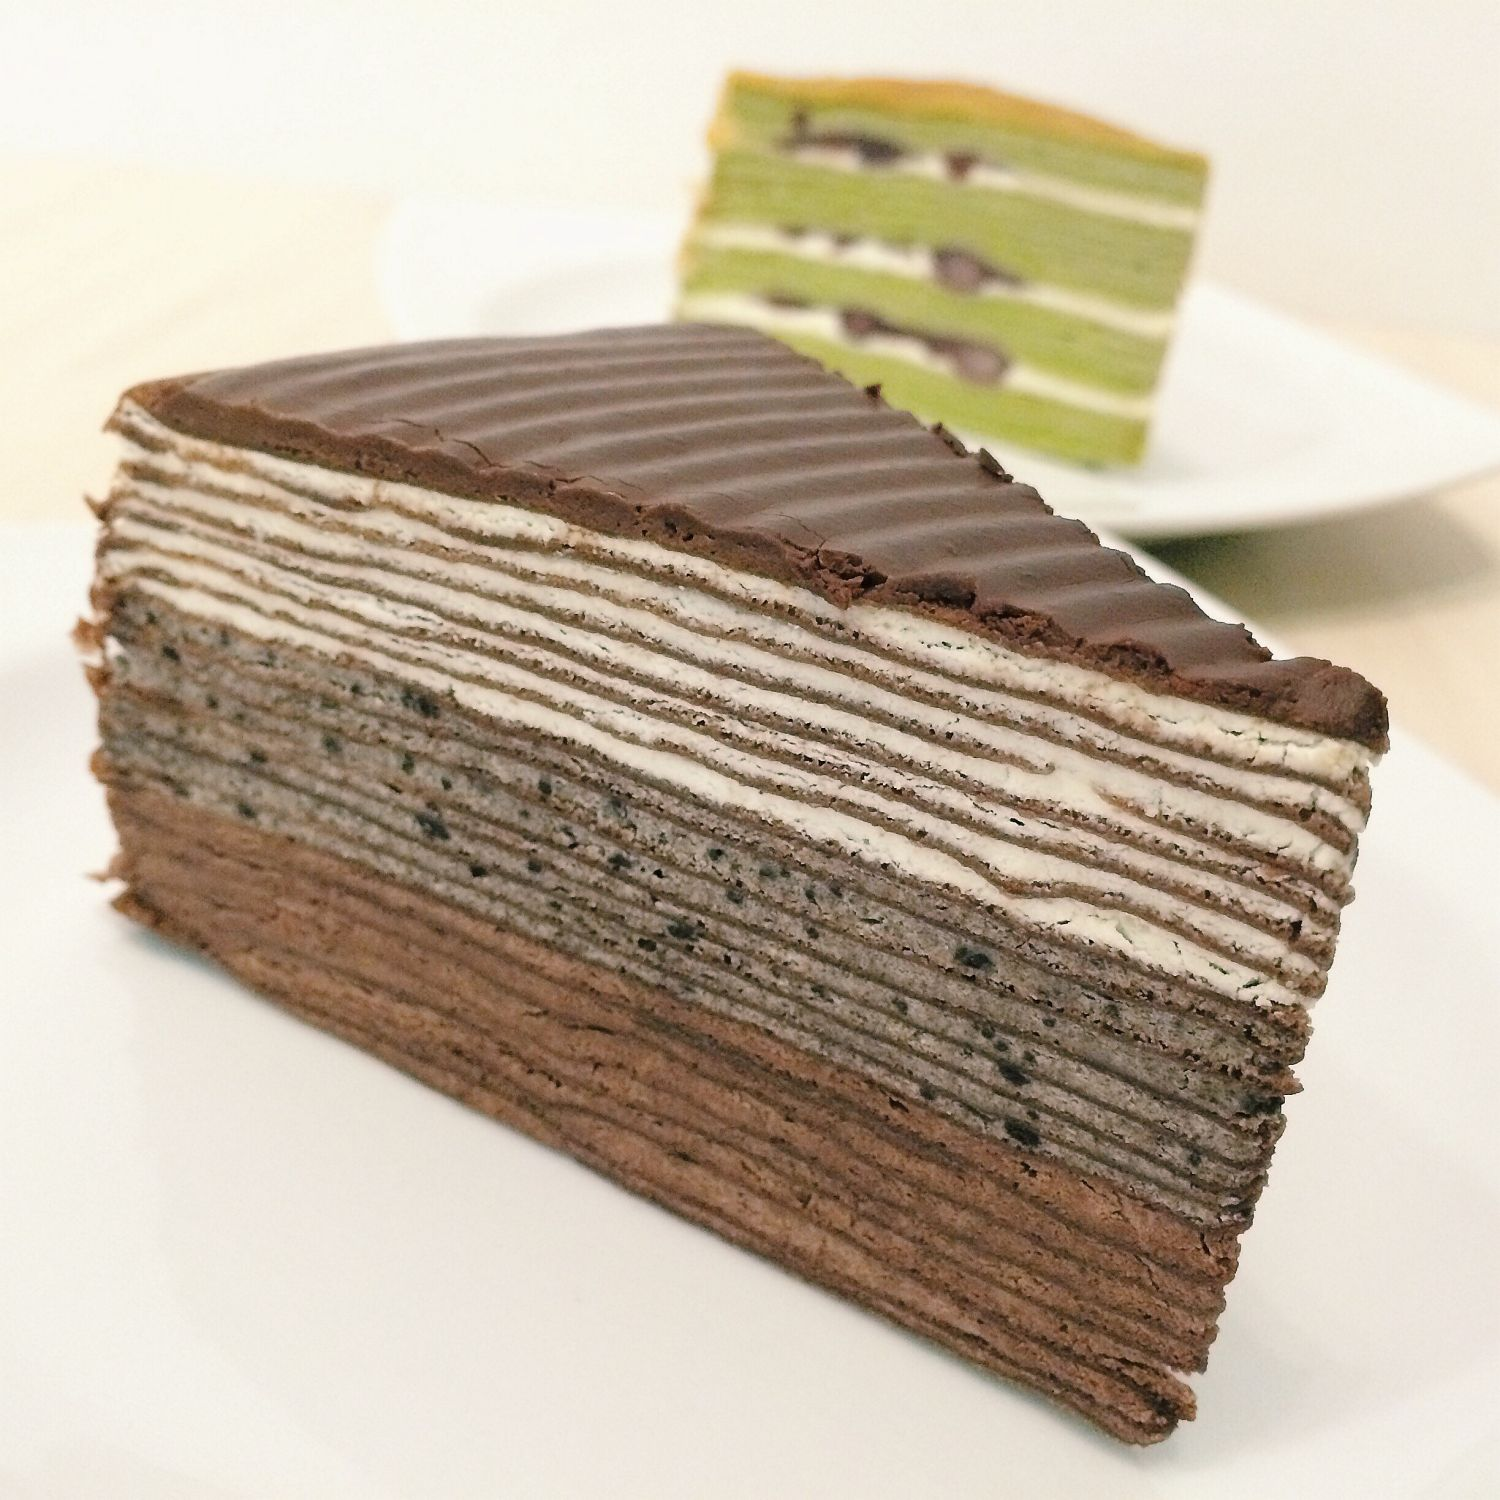 The Black Mille Crepe Cake - Champs Patisserie